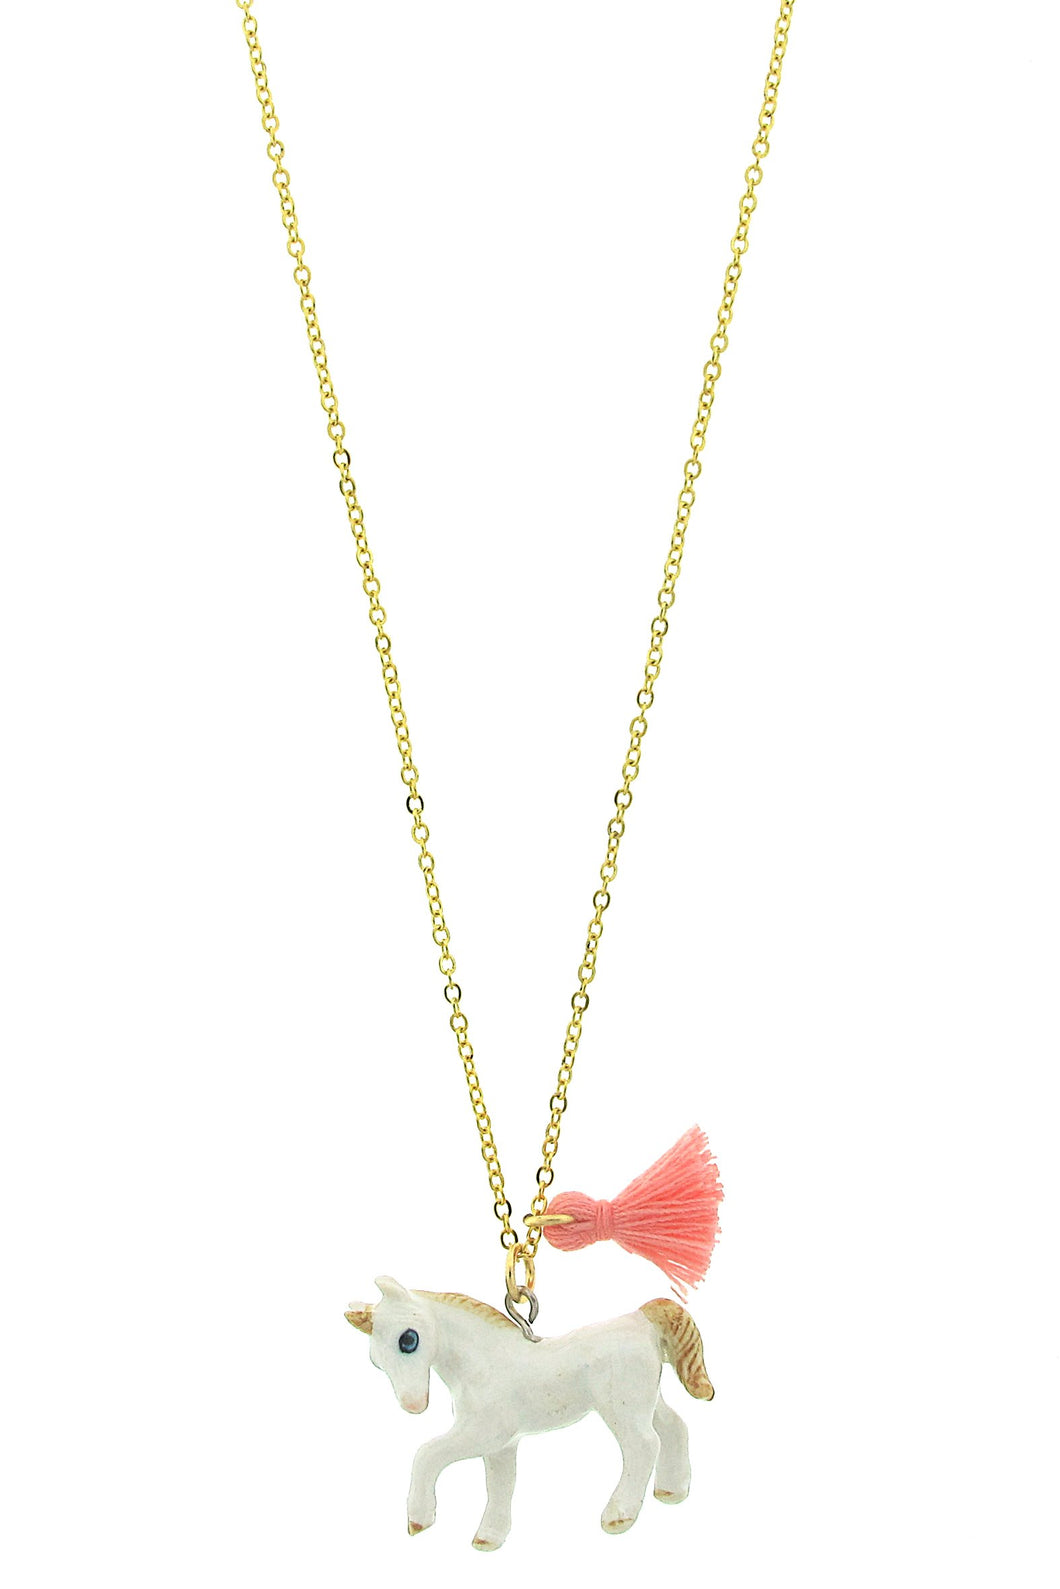 Unicorn Lil' Critters Necklace